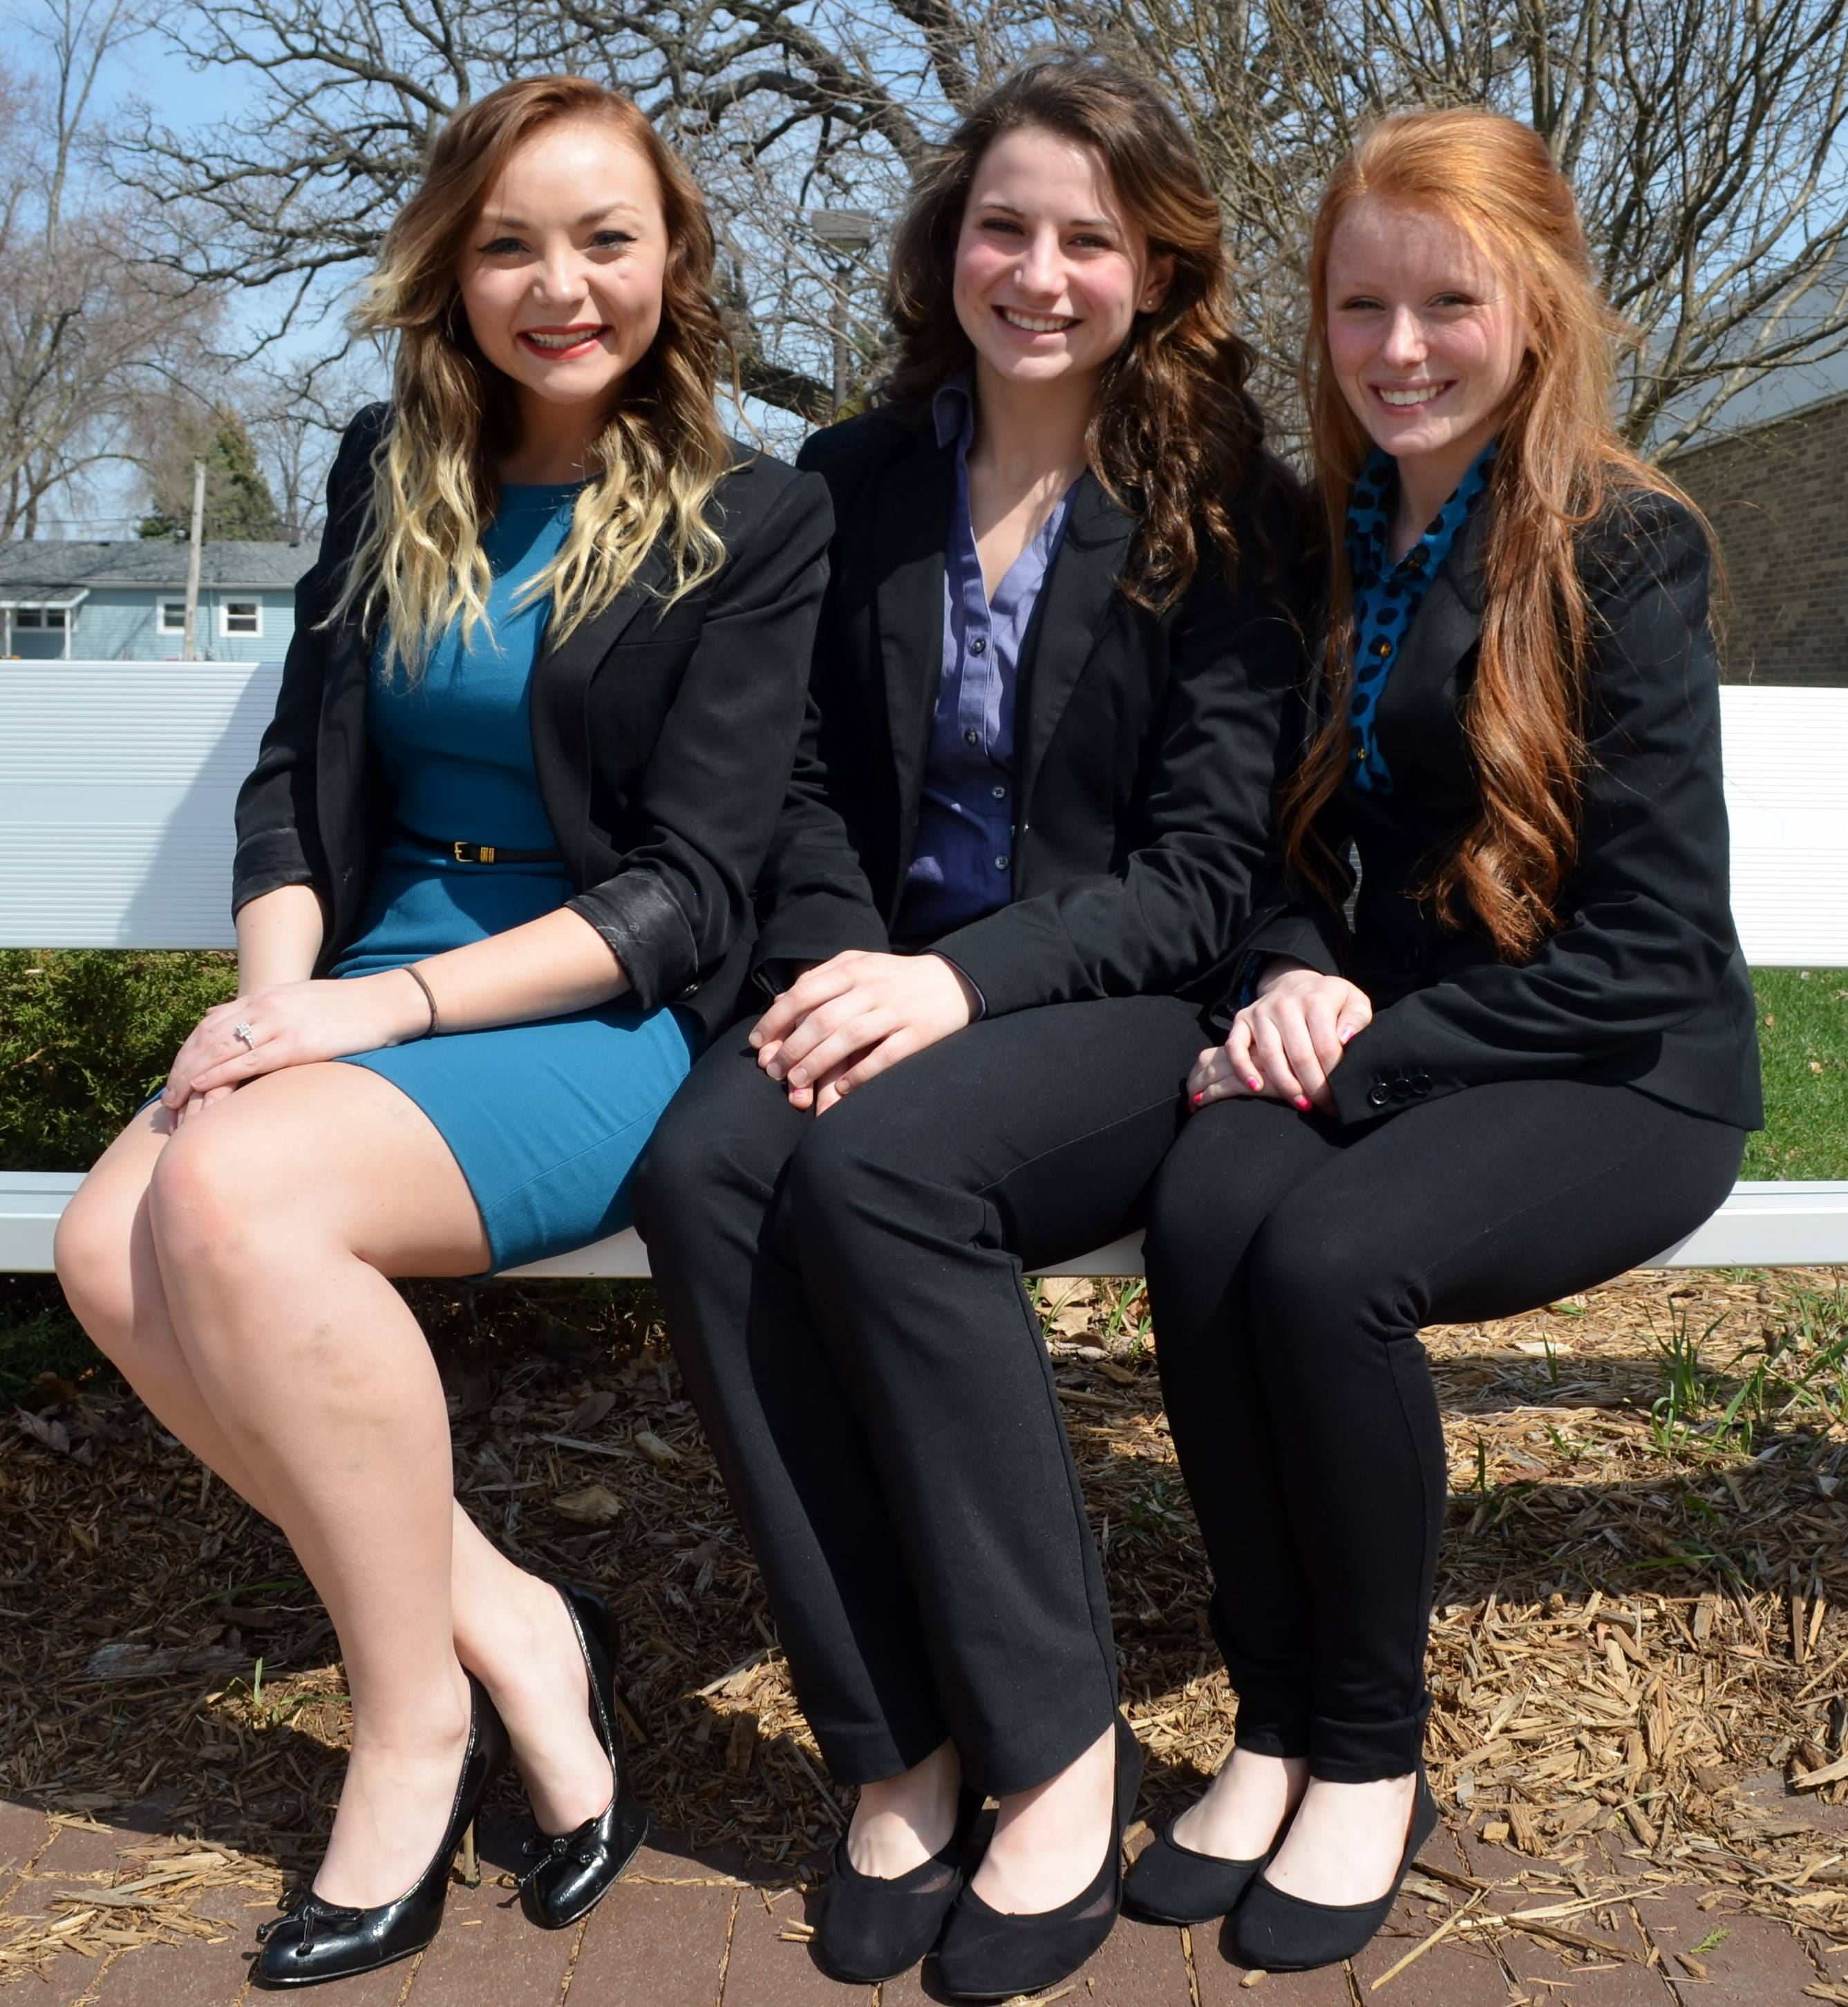 Sarah Ulrich (Left), Lexi Meyer (Middle), Emily Holmes (Right)Mia Ashley